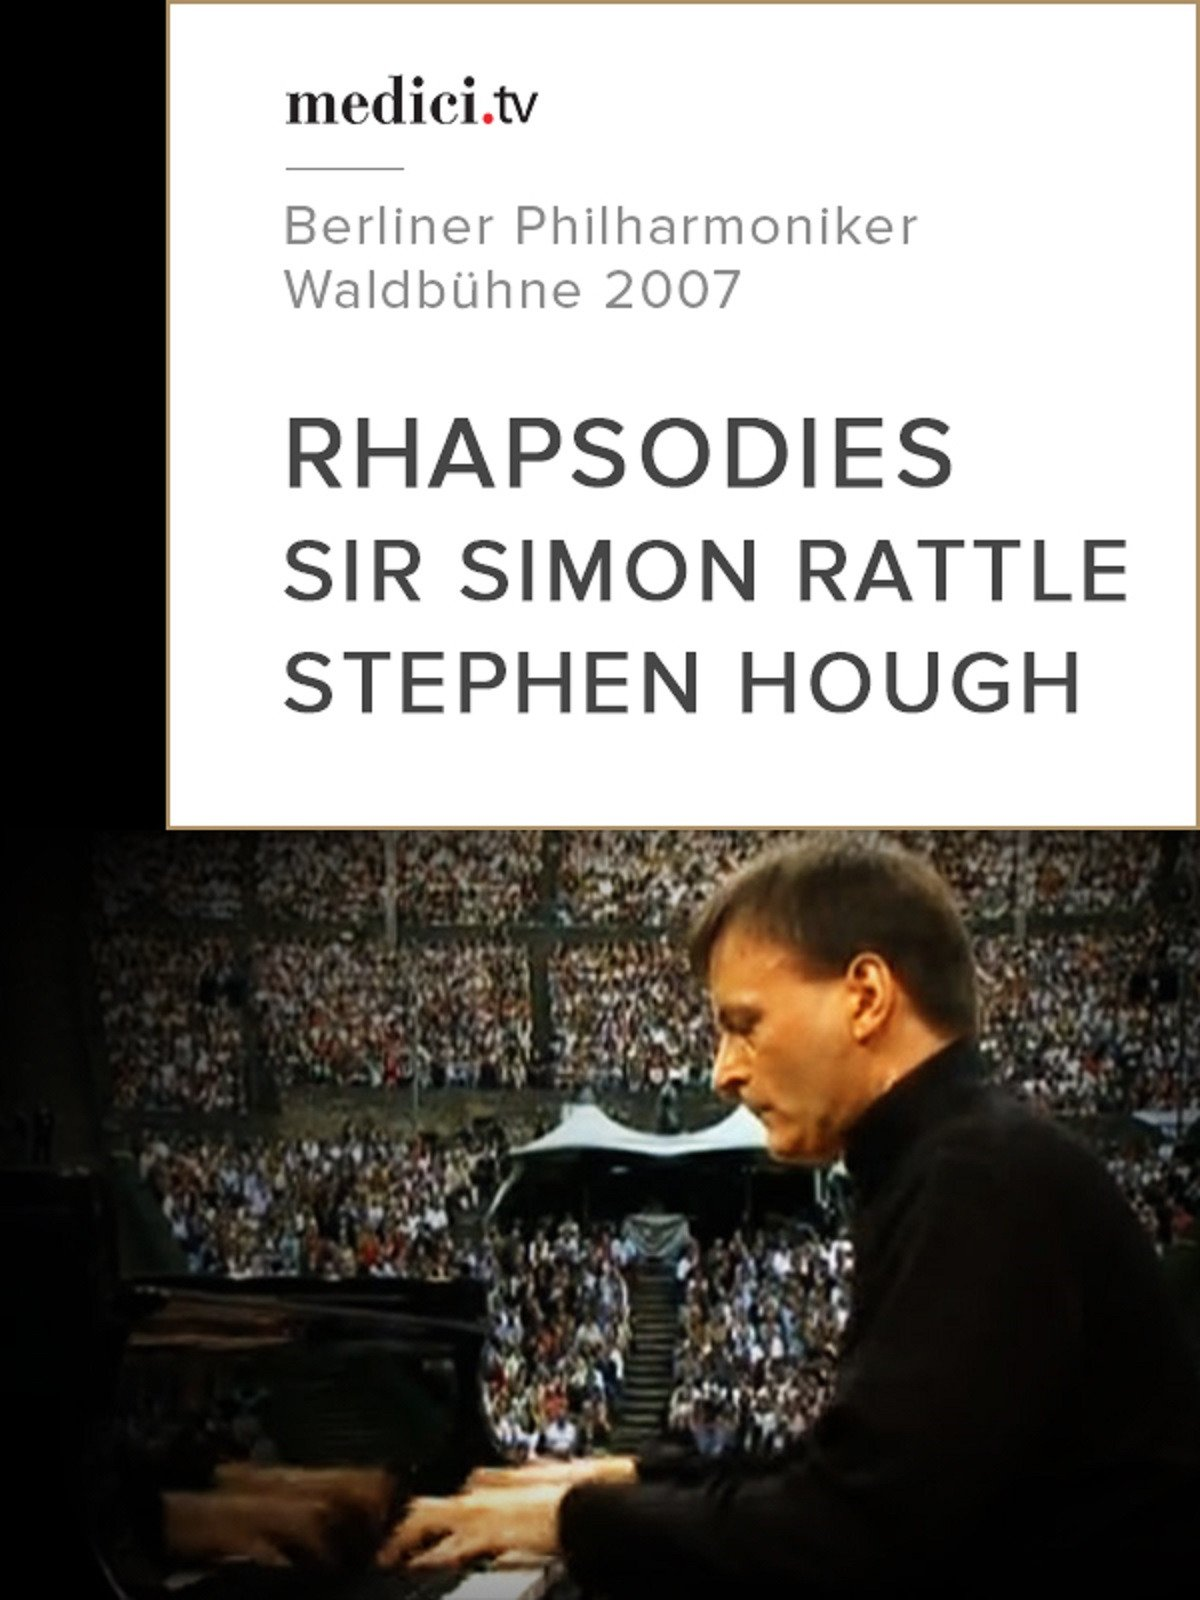 Rhapsodies, Sir Simon Rattle and Stephen Hough